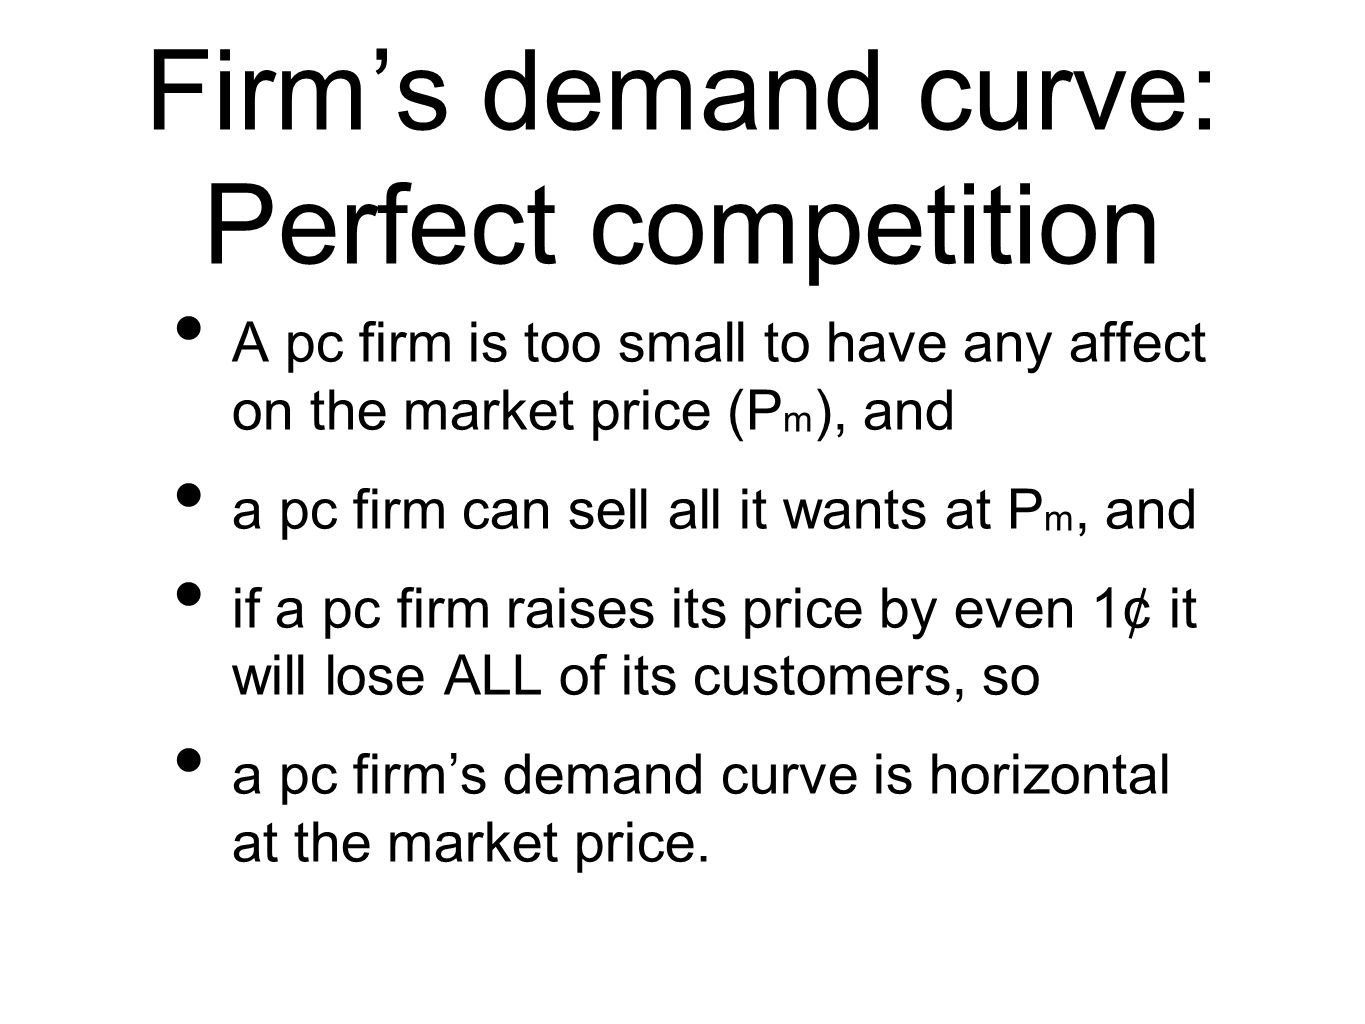 Firms demand curve: Perfect competition A pc firm is too small to have any affect on the market price (P m ), and a pc firm can sell all it wants at P m, and if a pc firm raises its price by even 1¢ it will lose ALL of its customers, so a pc firms demand curve is horizontal at the market price.